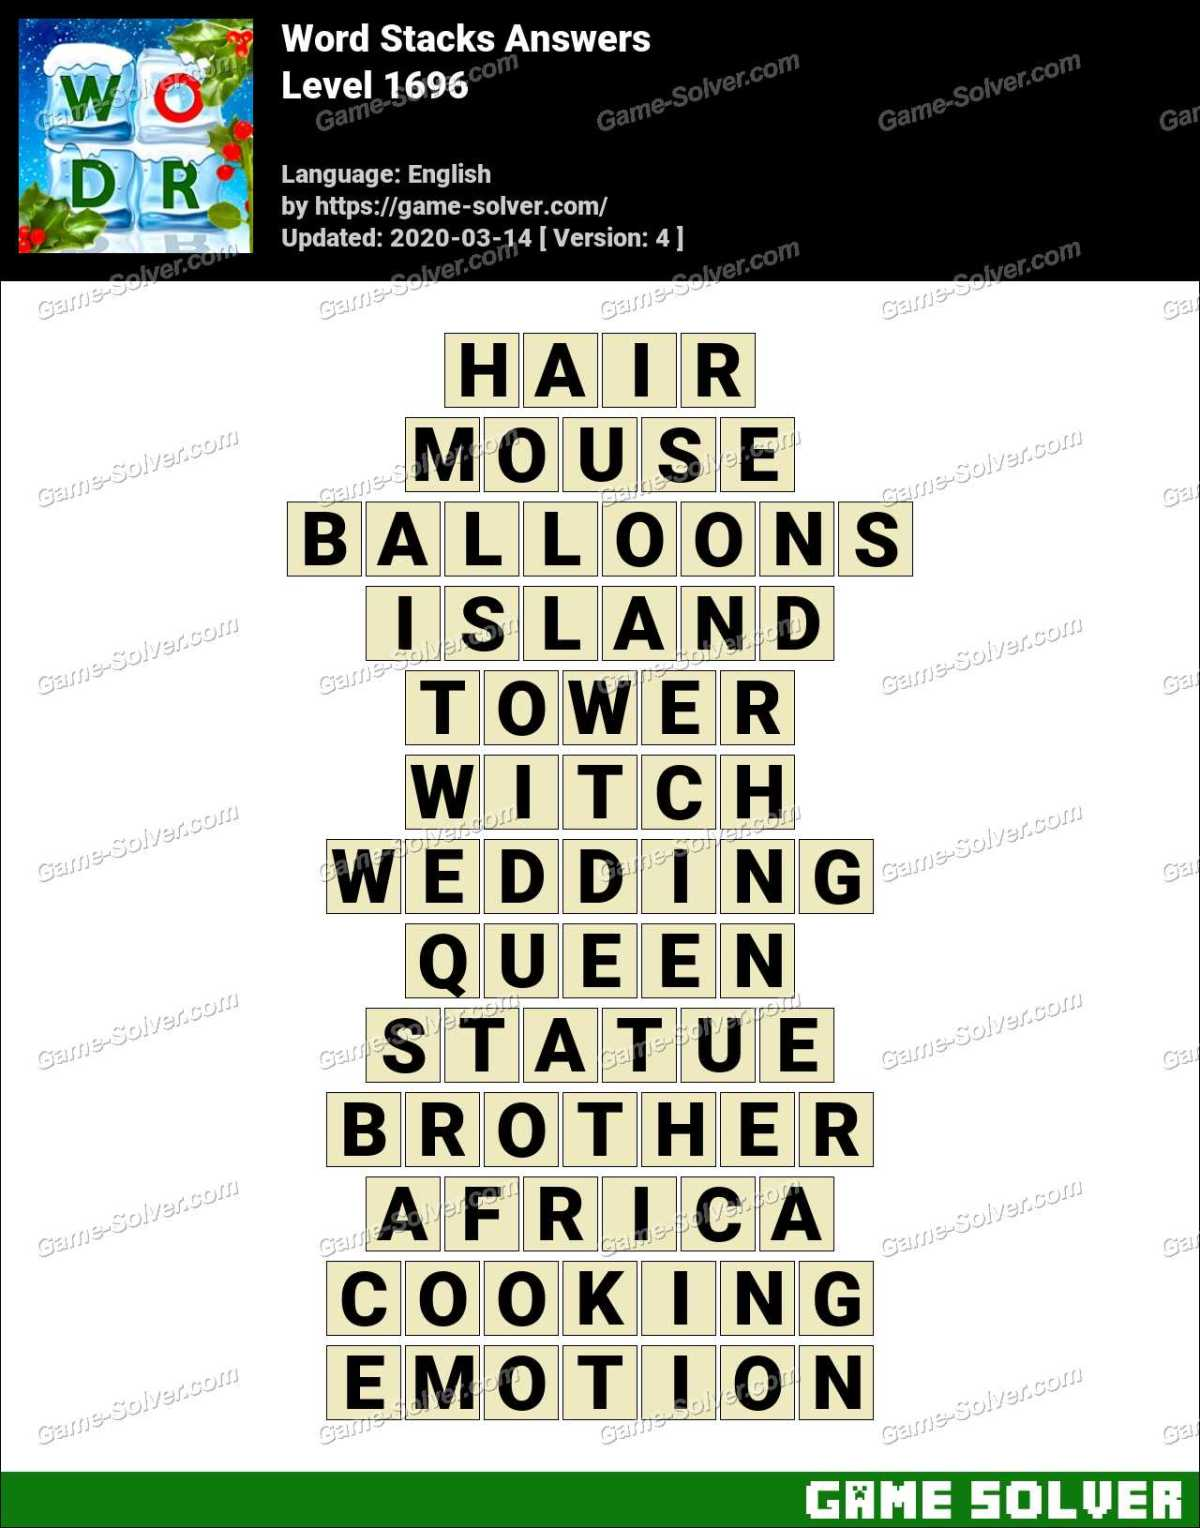 Word Stacks Level 1696 Answers